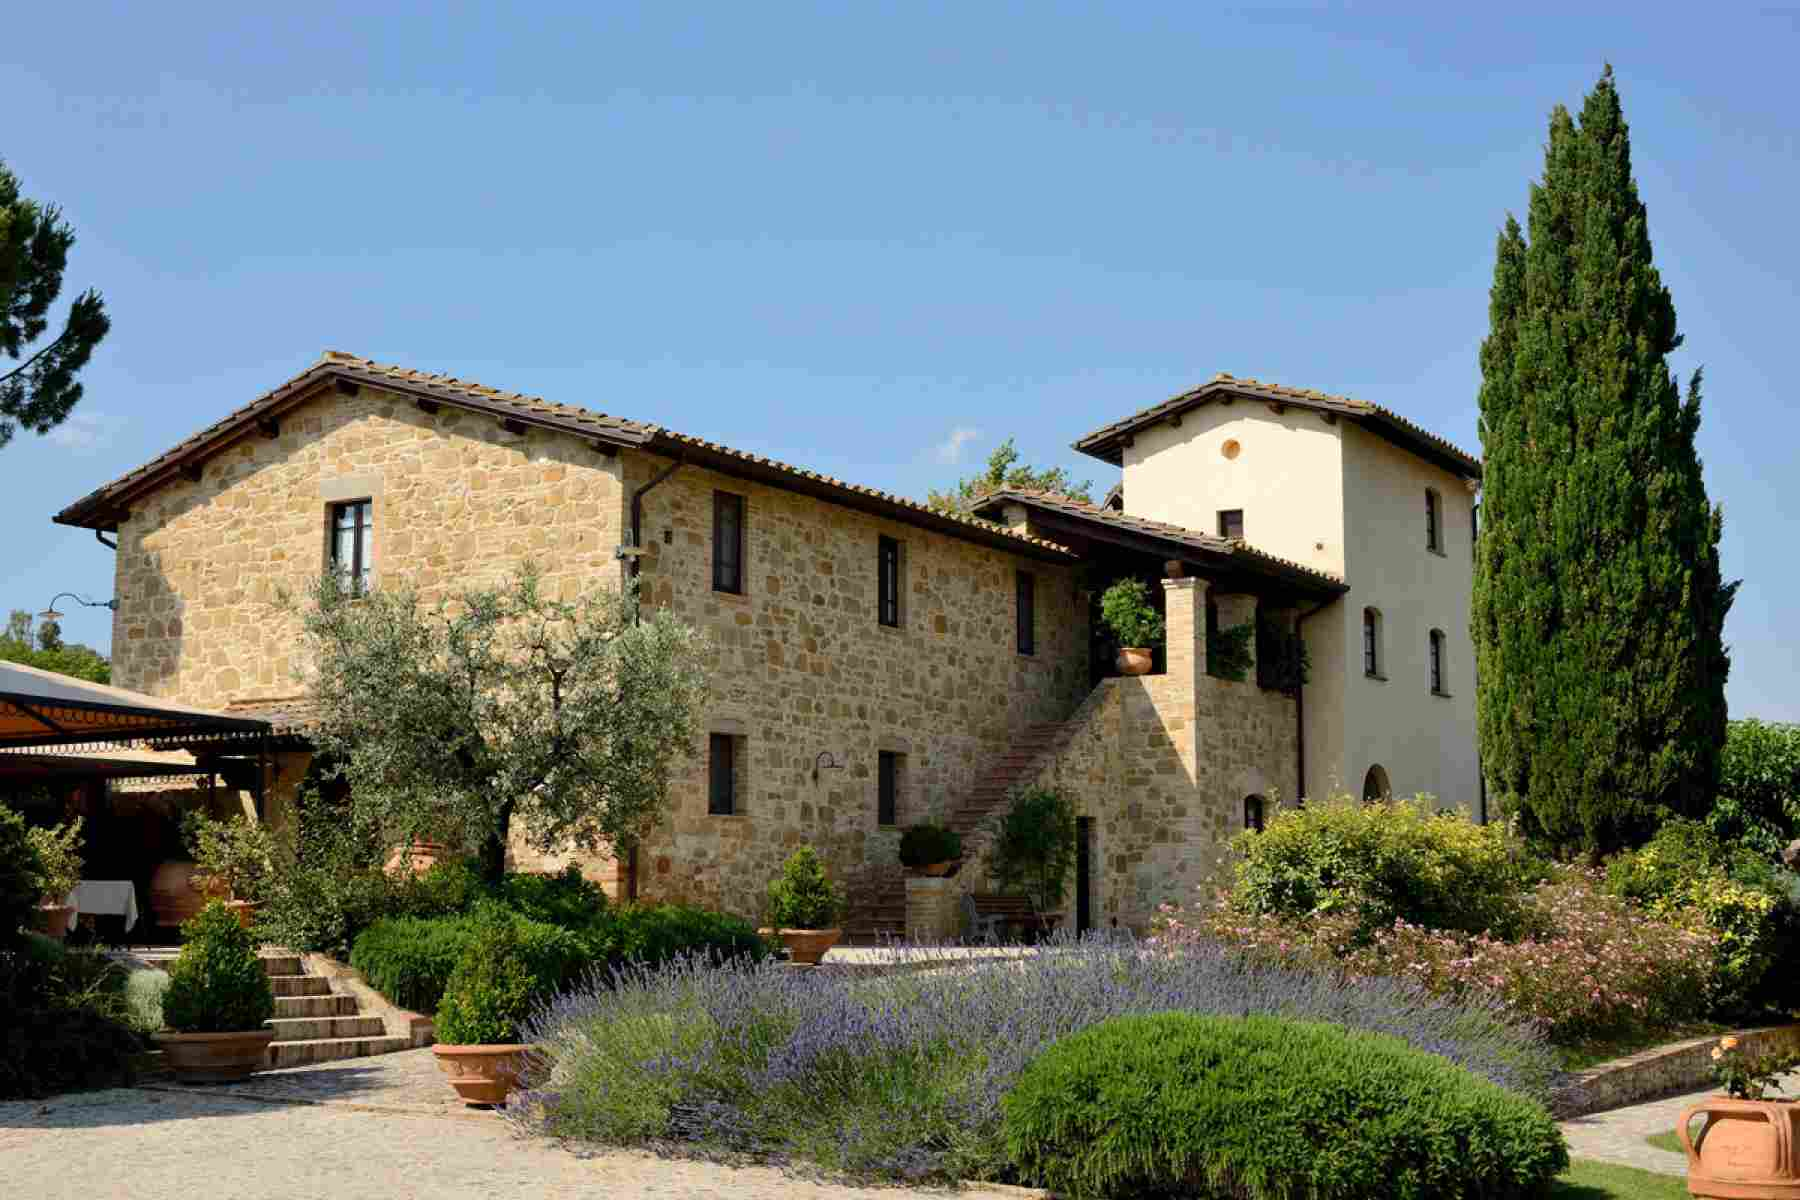 Marry in the county of Assisi Wedding Package